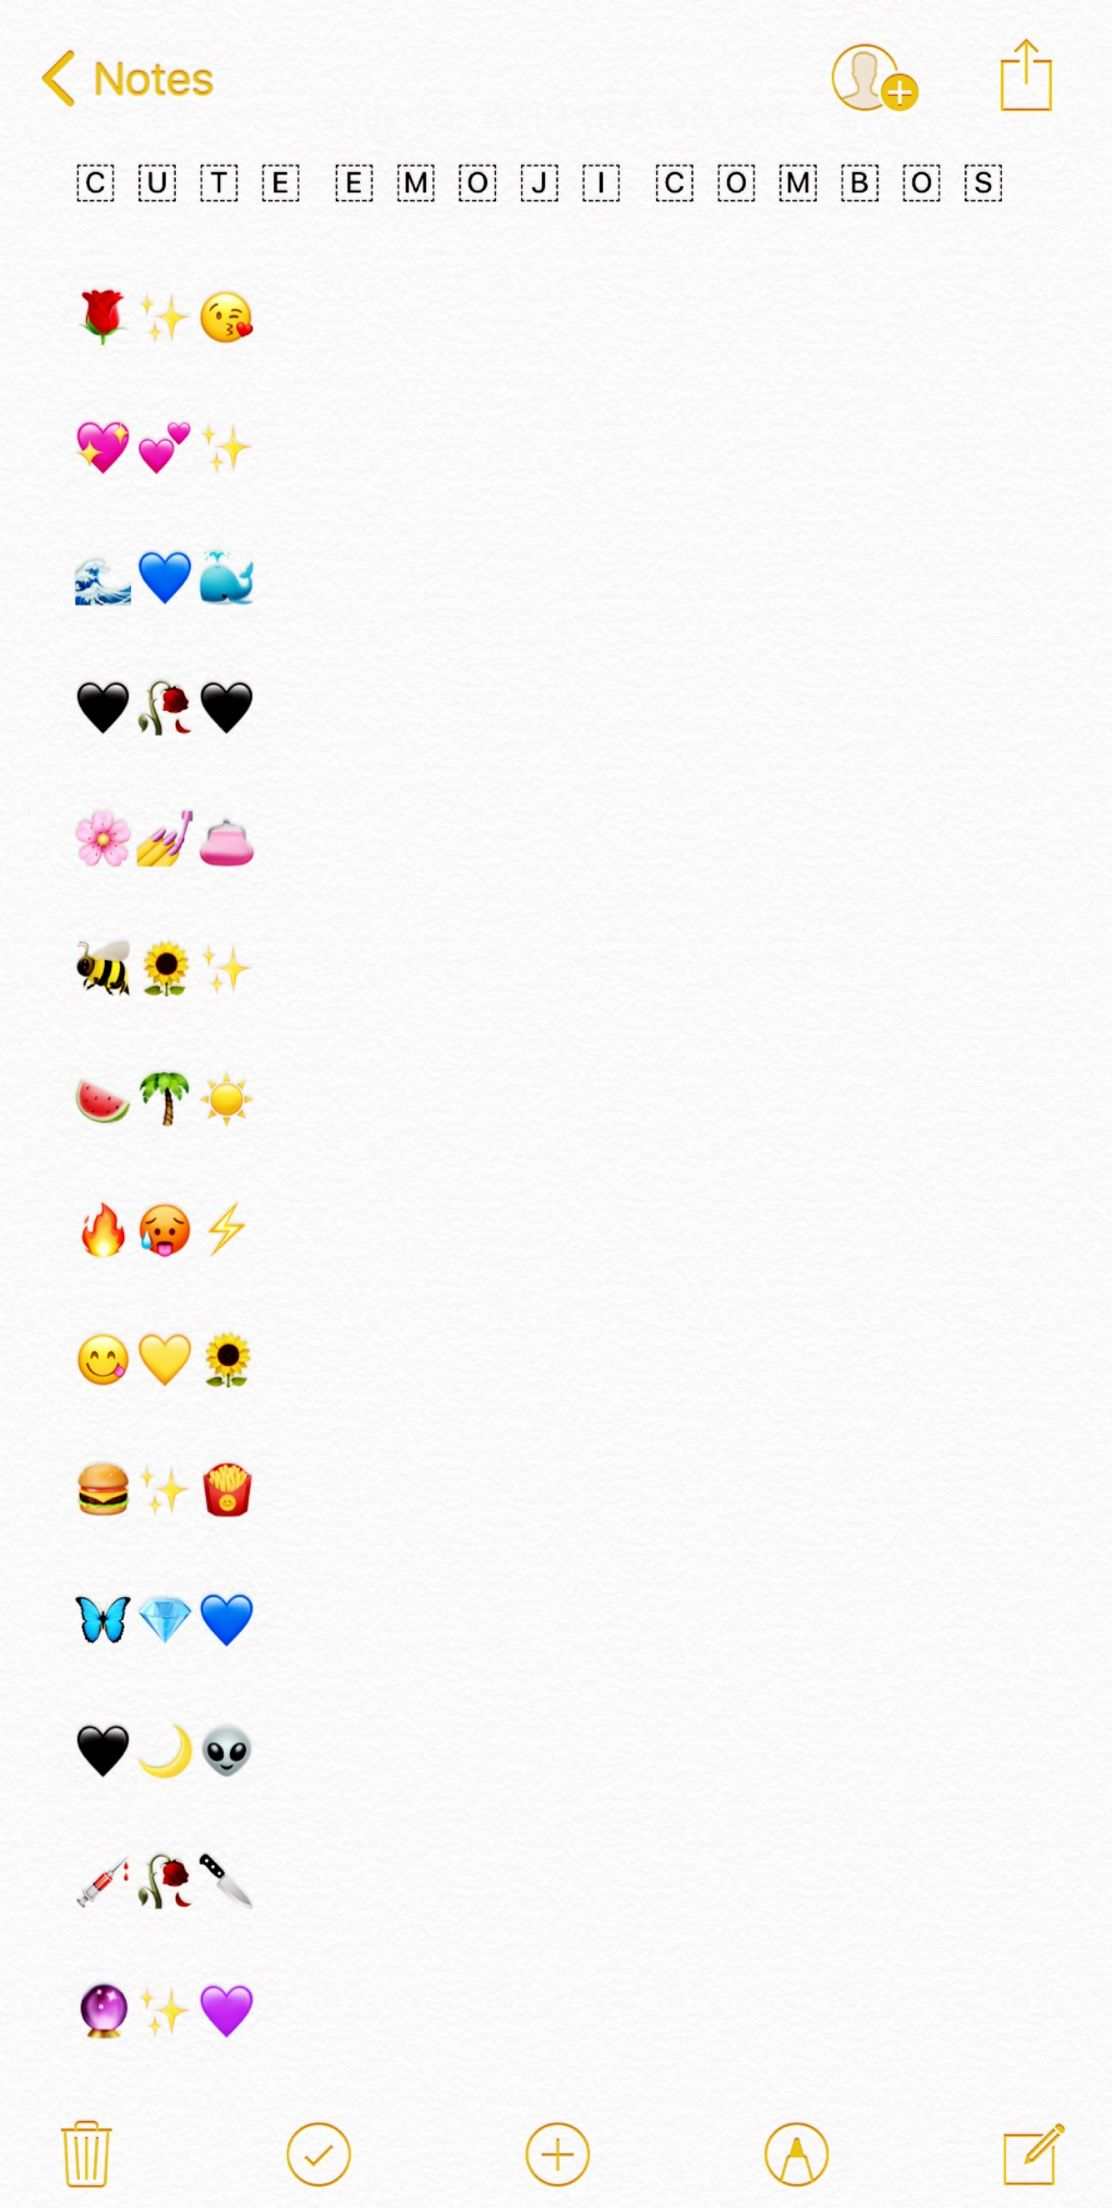 Cute Emoji Combos Emoji Combinations Instagram Emoji Cute Emoji Combinations